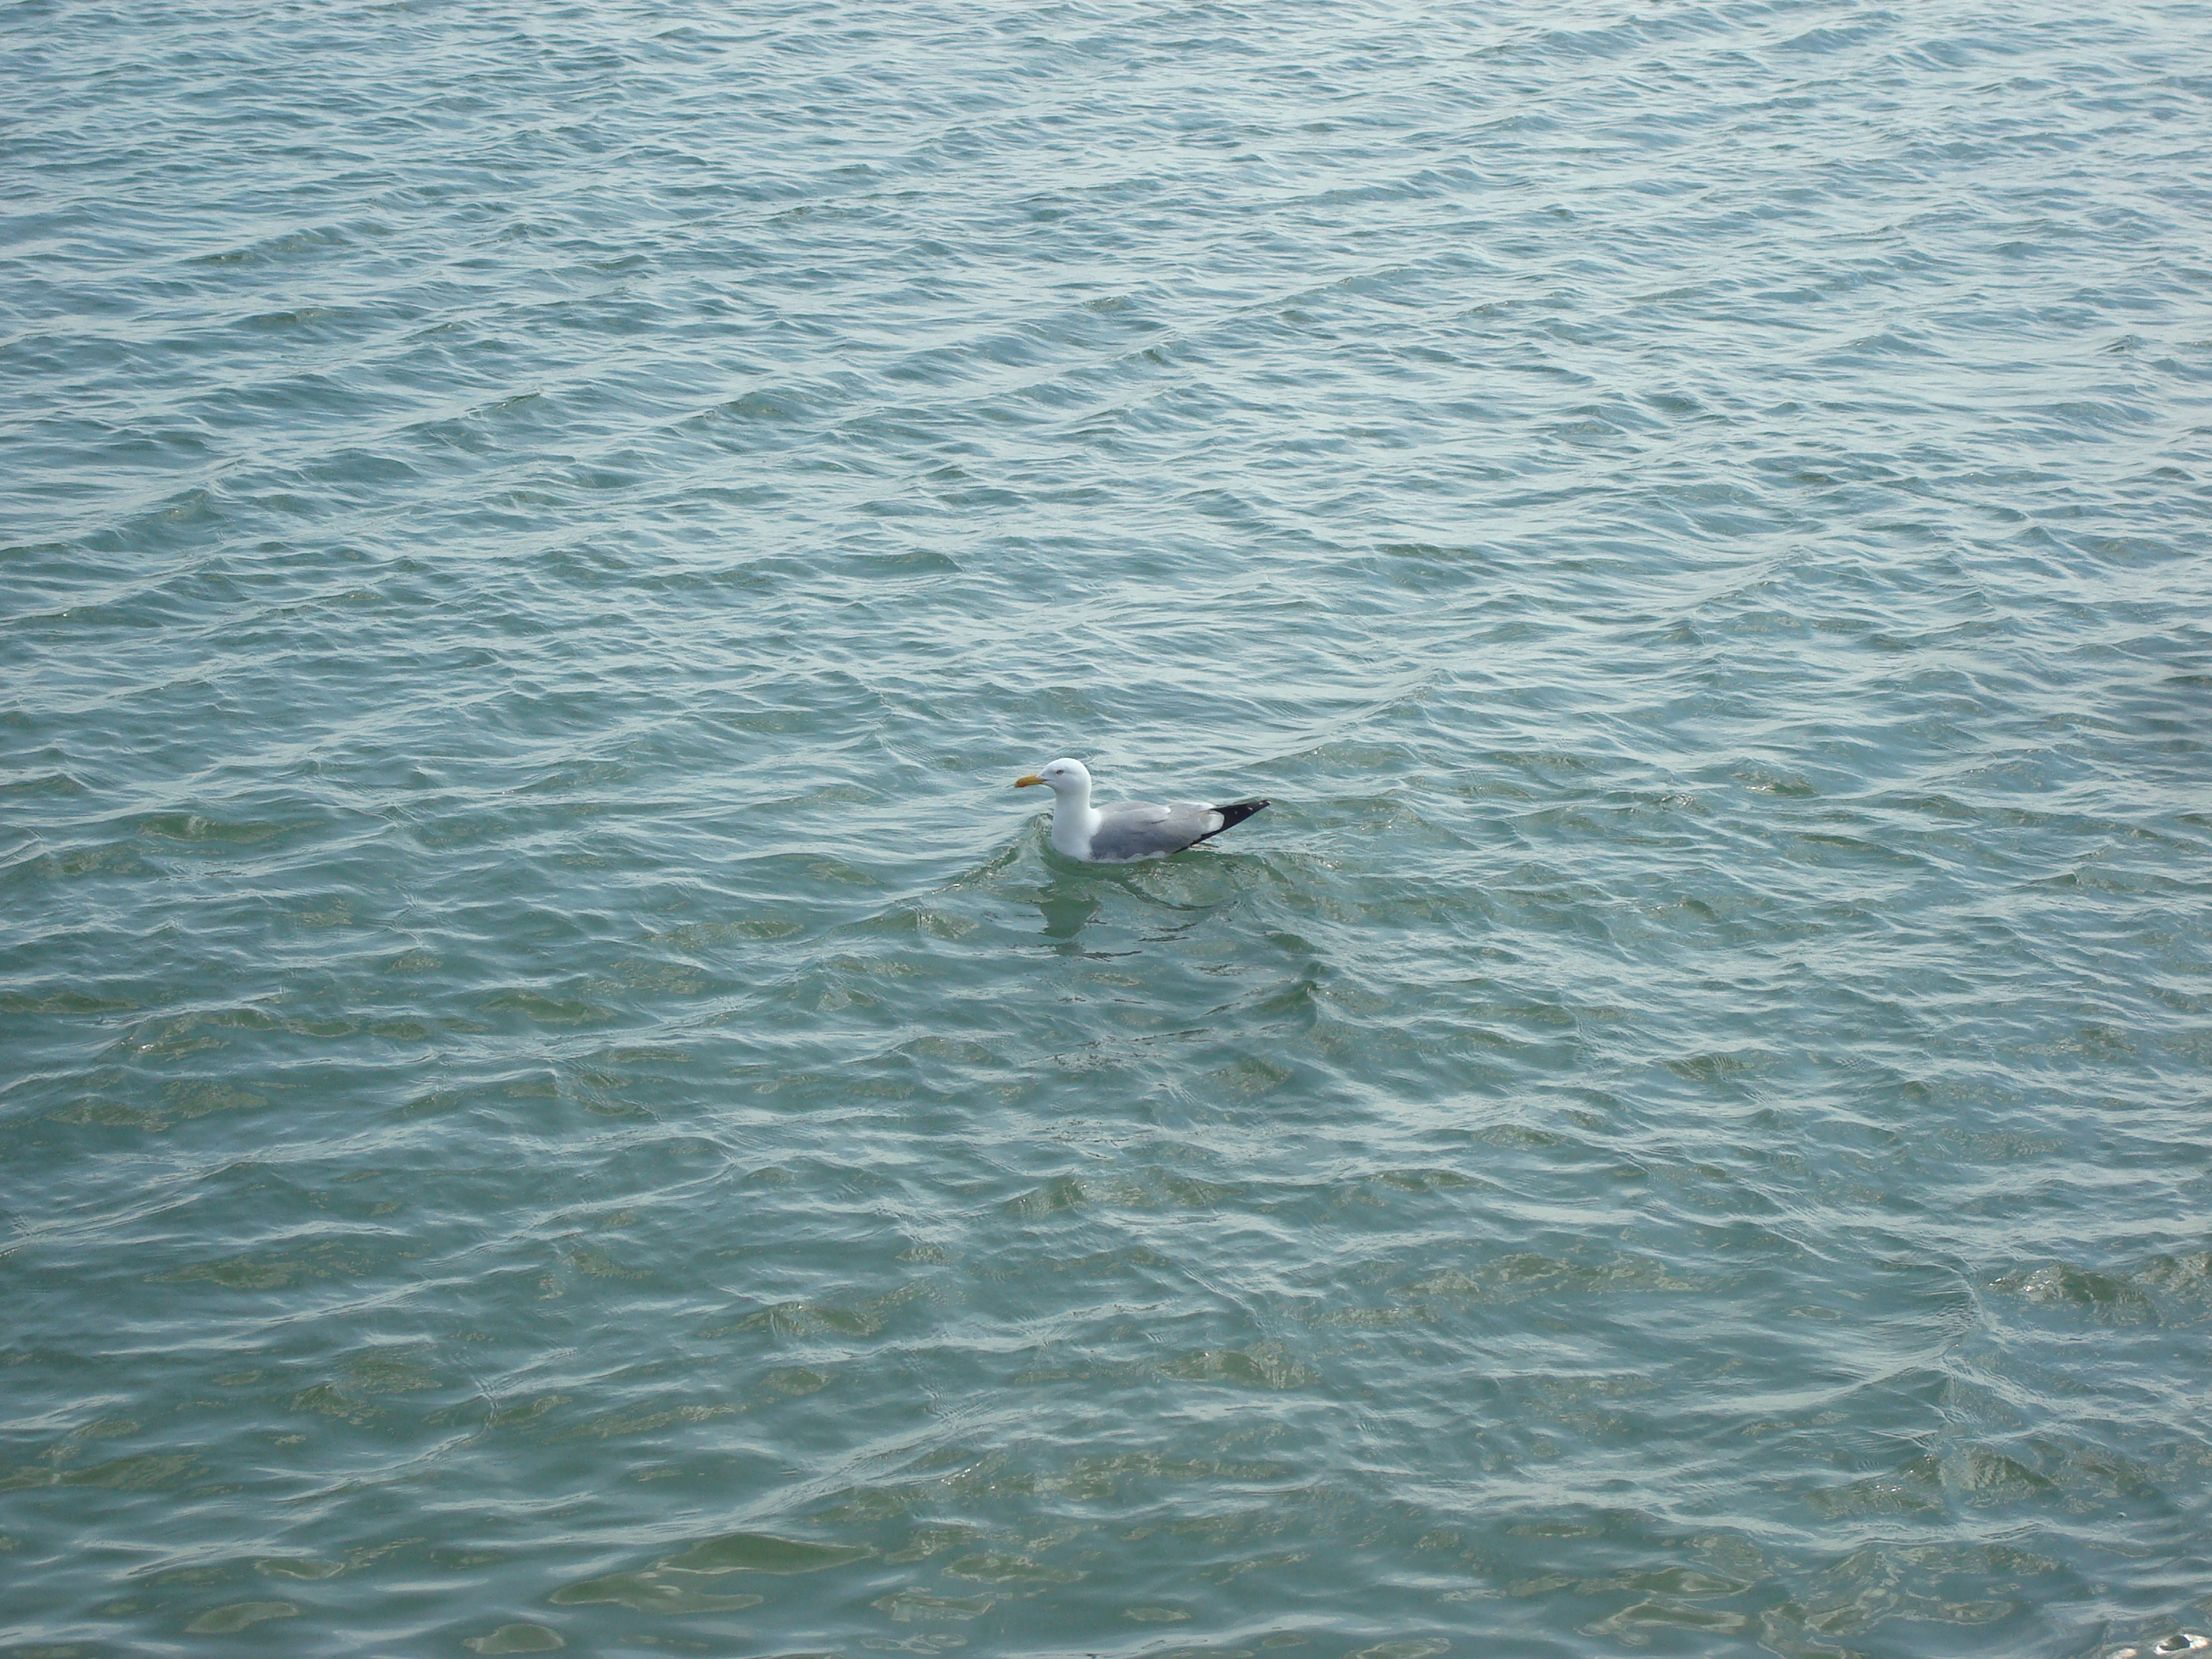 A seagull in the sea photo